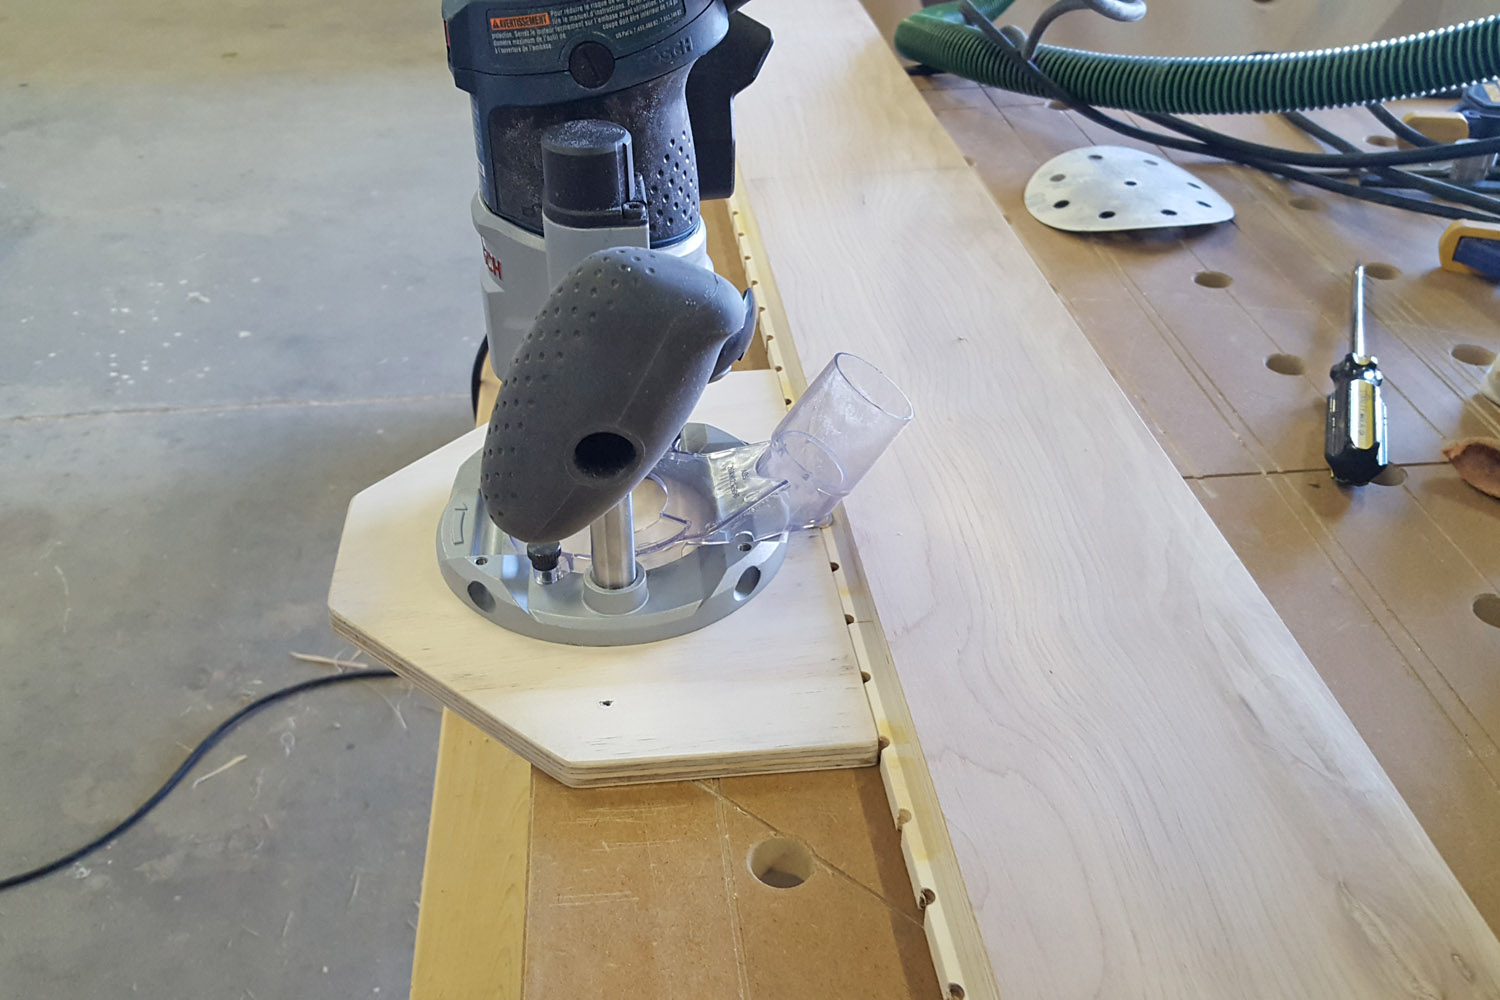 Shelf pin hole jig with Colt router - CG&H Builders Inc.